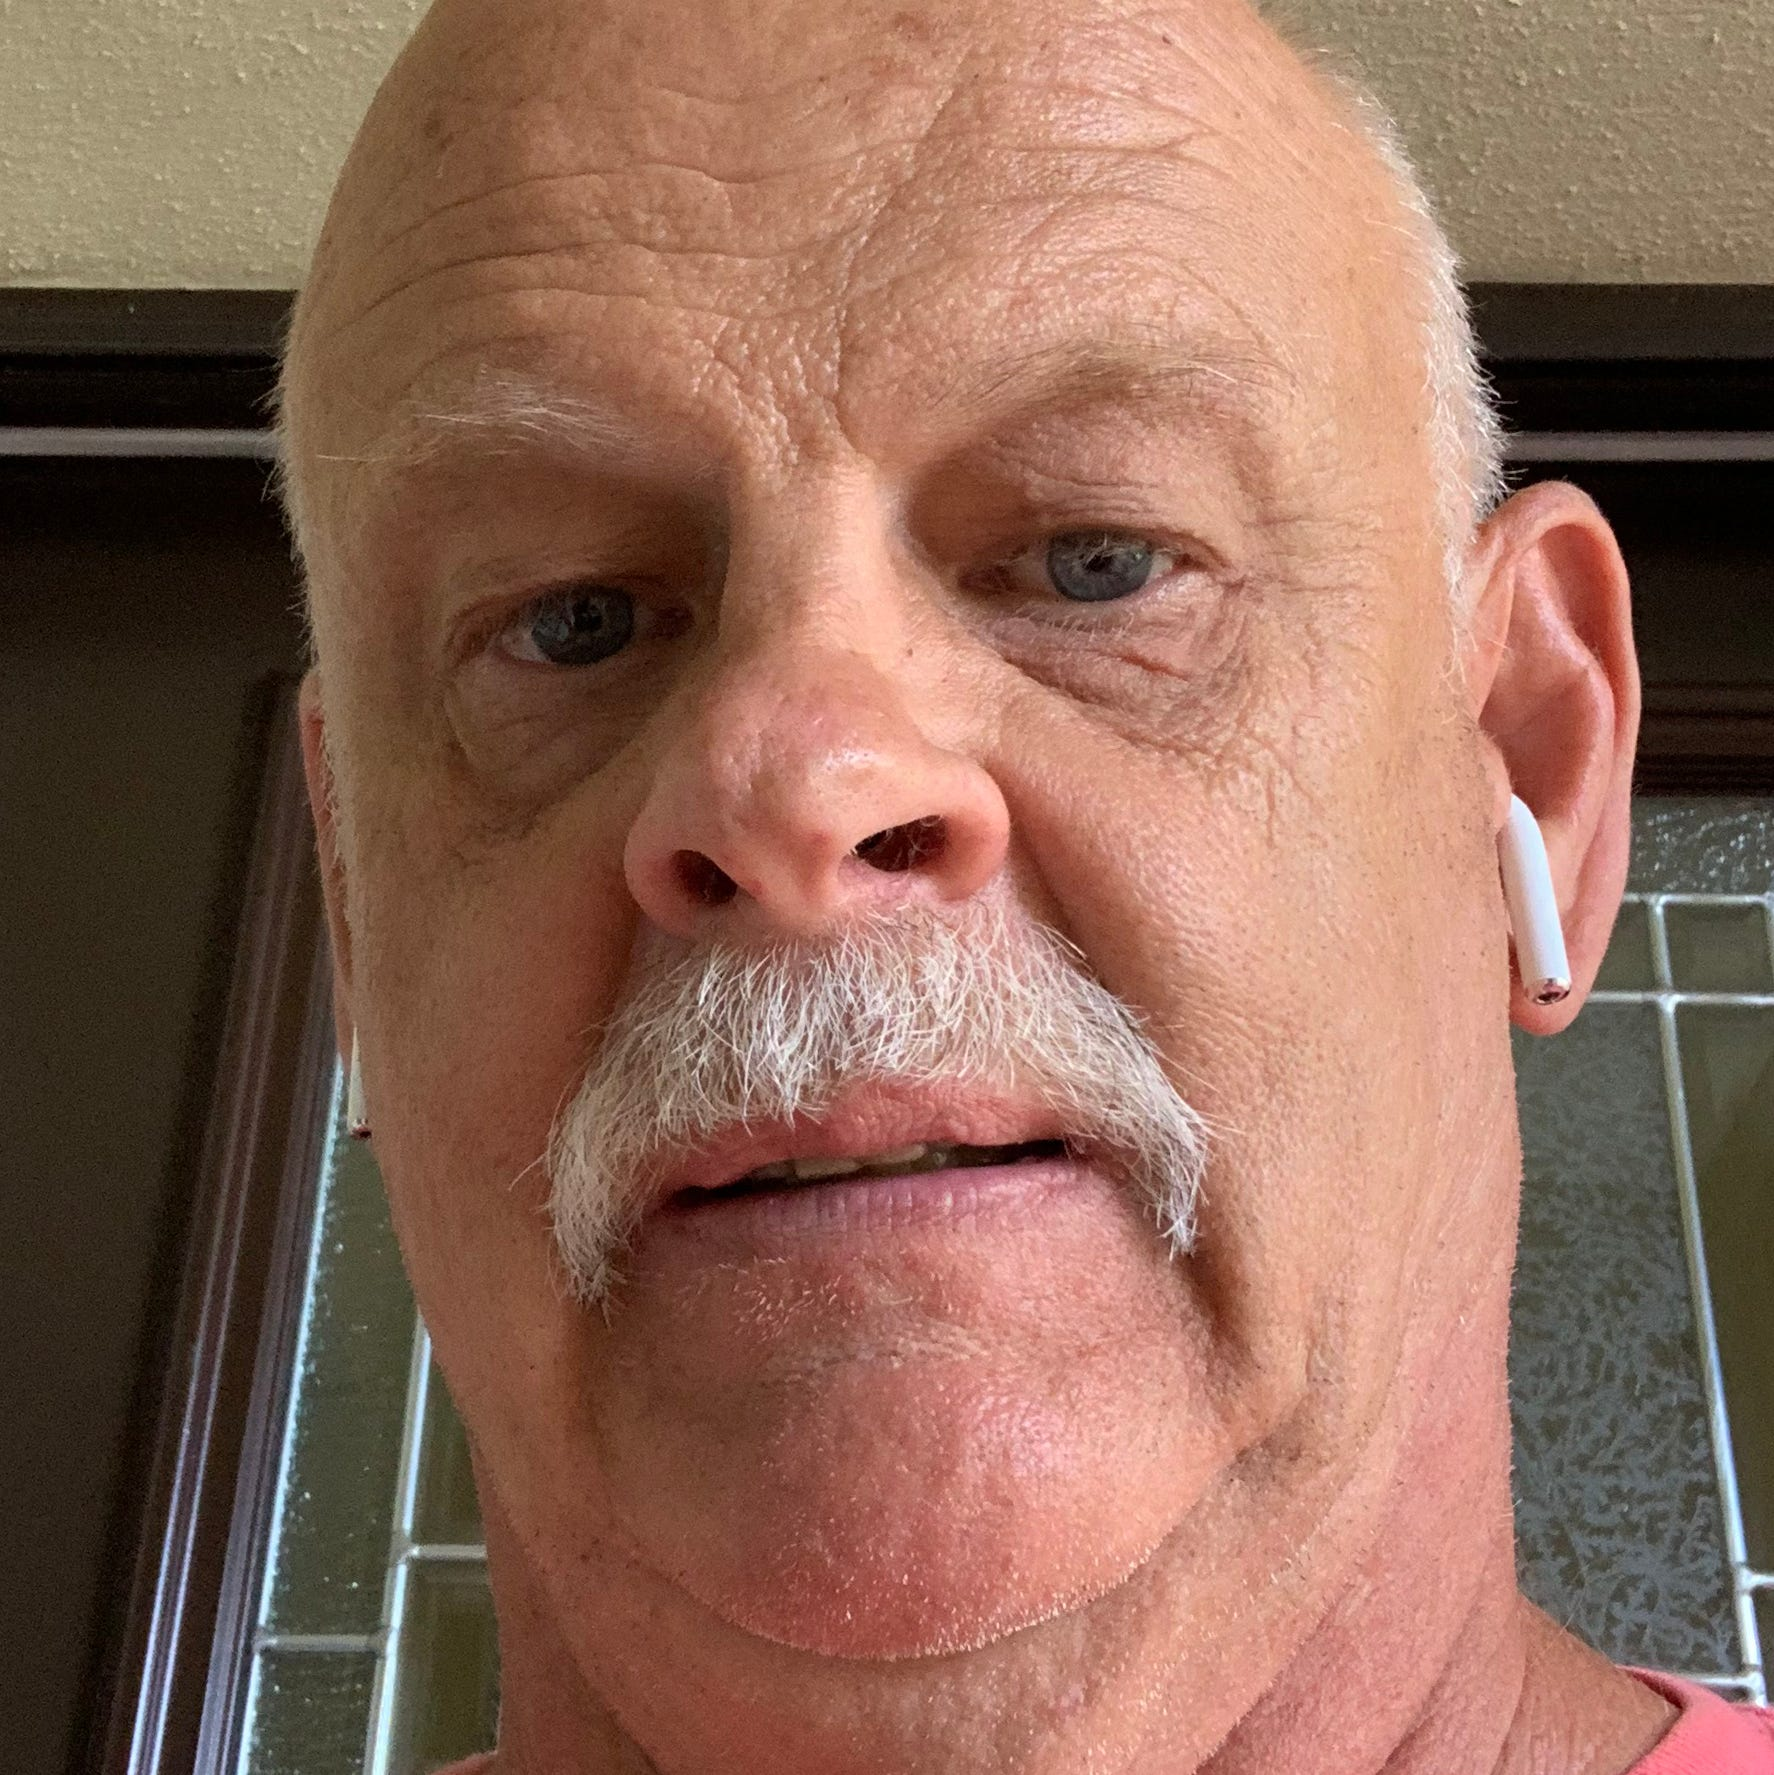 """Philip Frincke of Venice, Florida is the owner of a 2014 Ford Focus. He took this photo on July 8 at home. He said, """"I had more hair before this whole deal started back in 2014."""""""